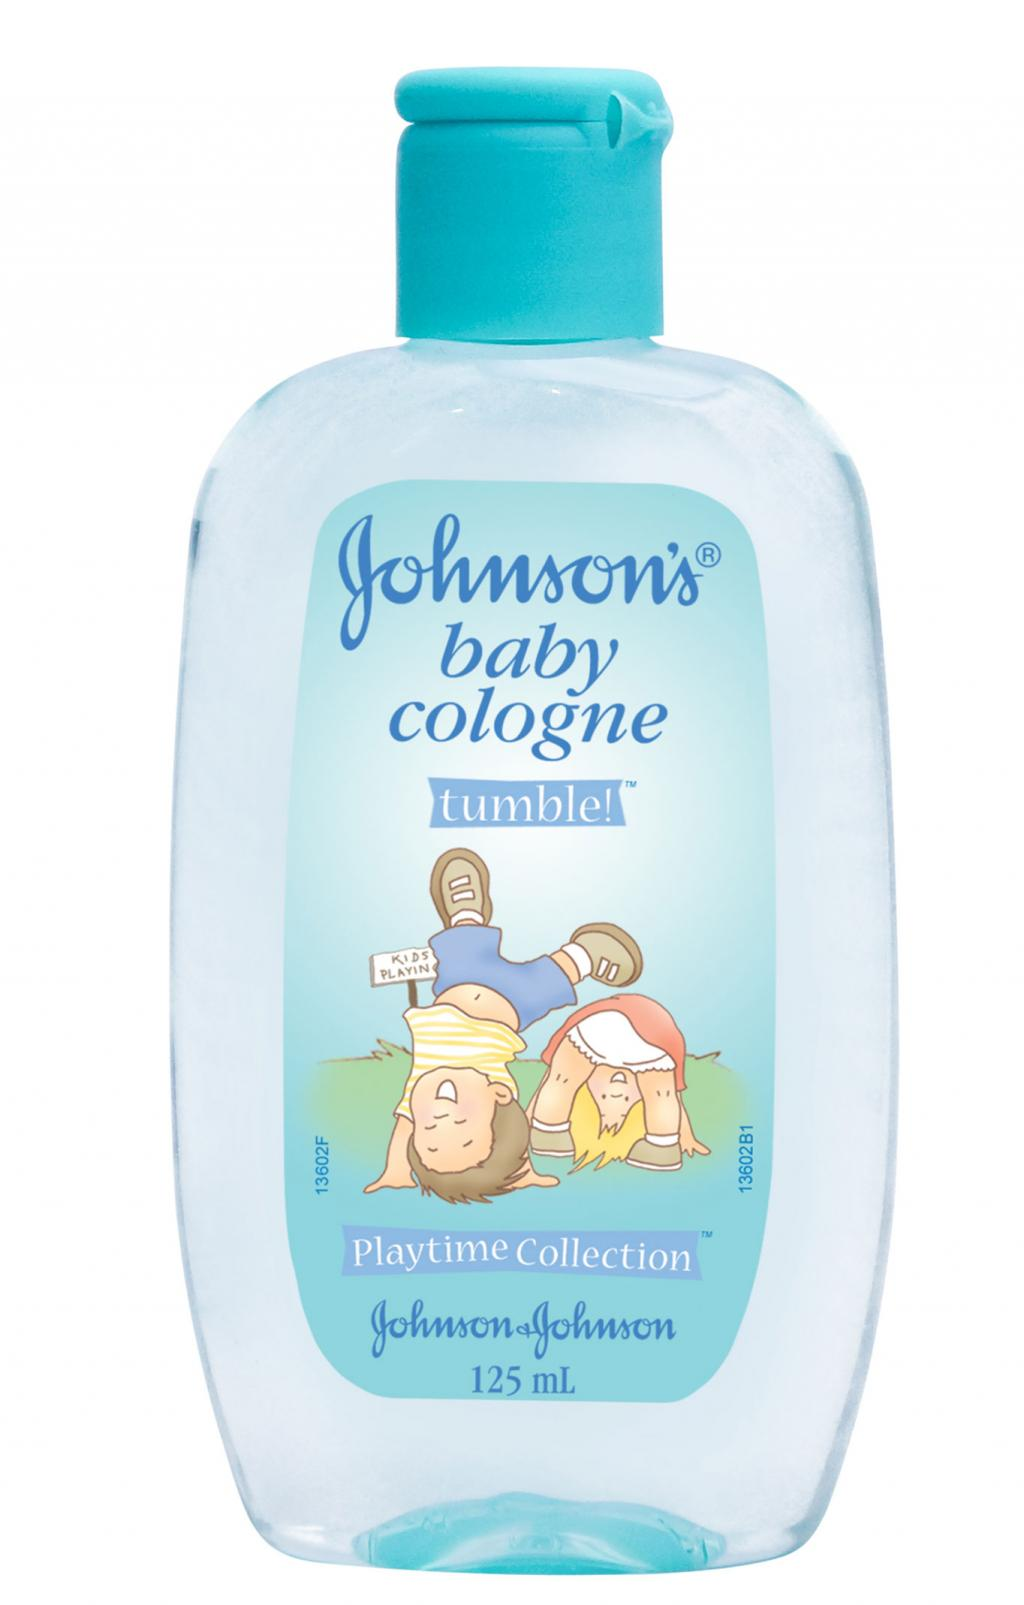 JOHNSON'S® baby cologne tumble